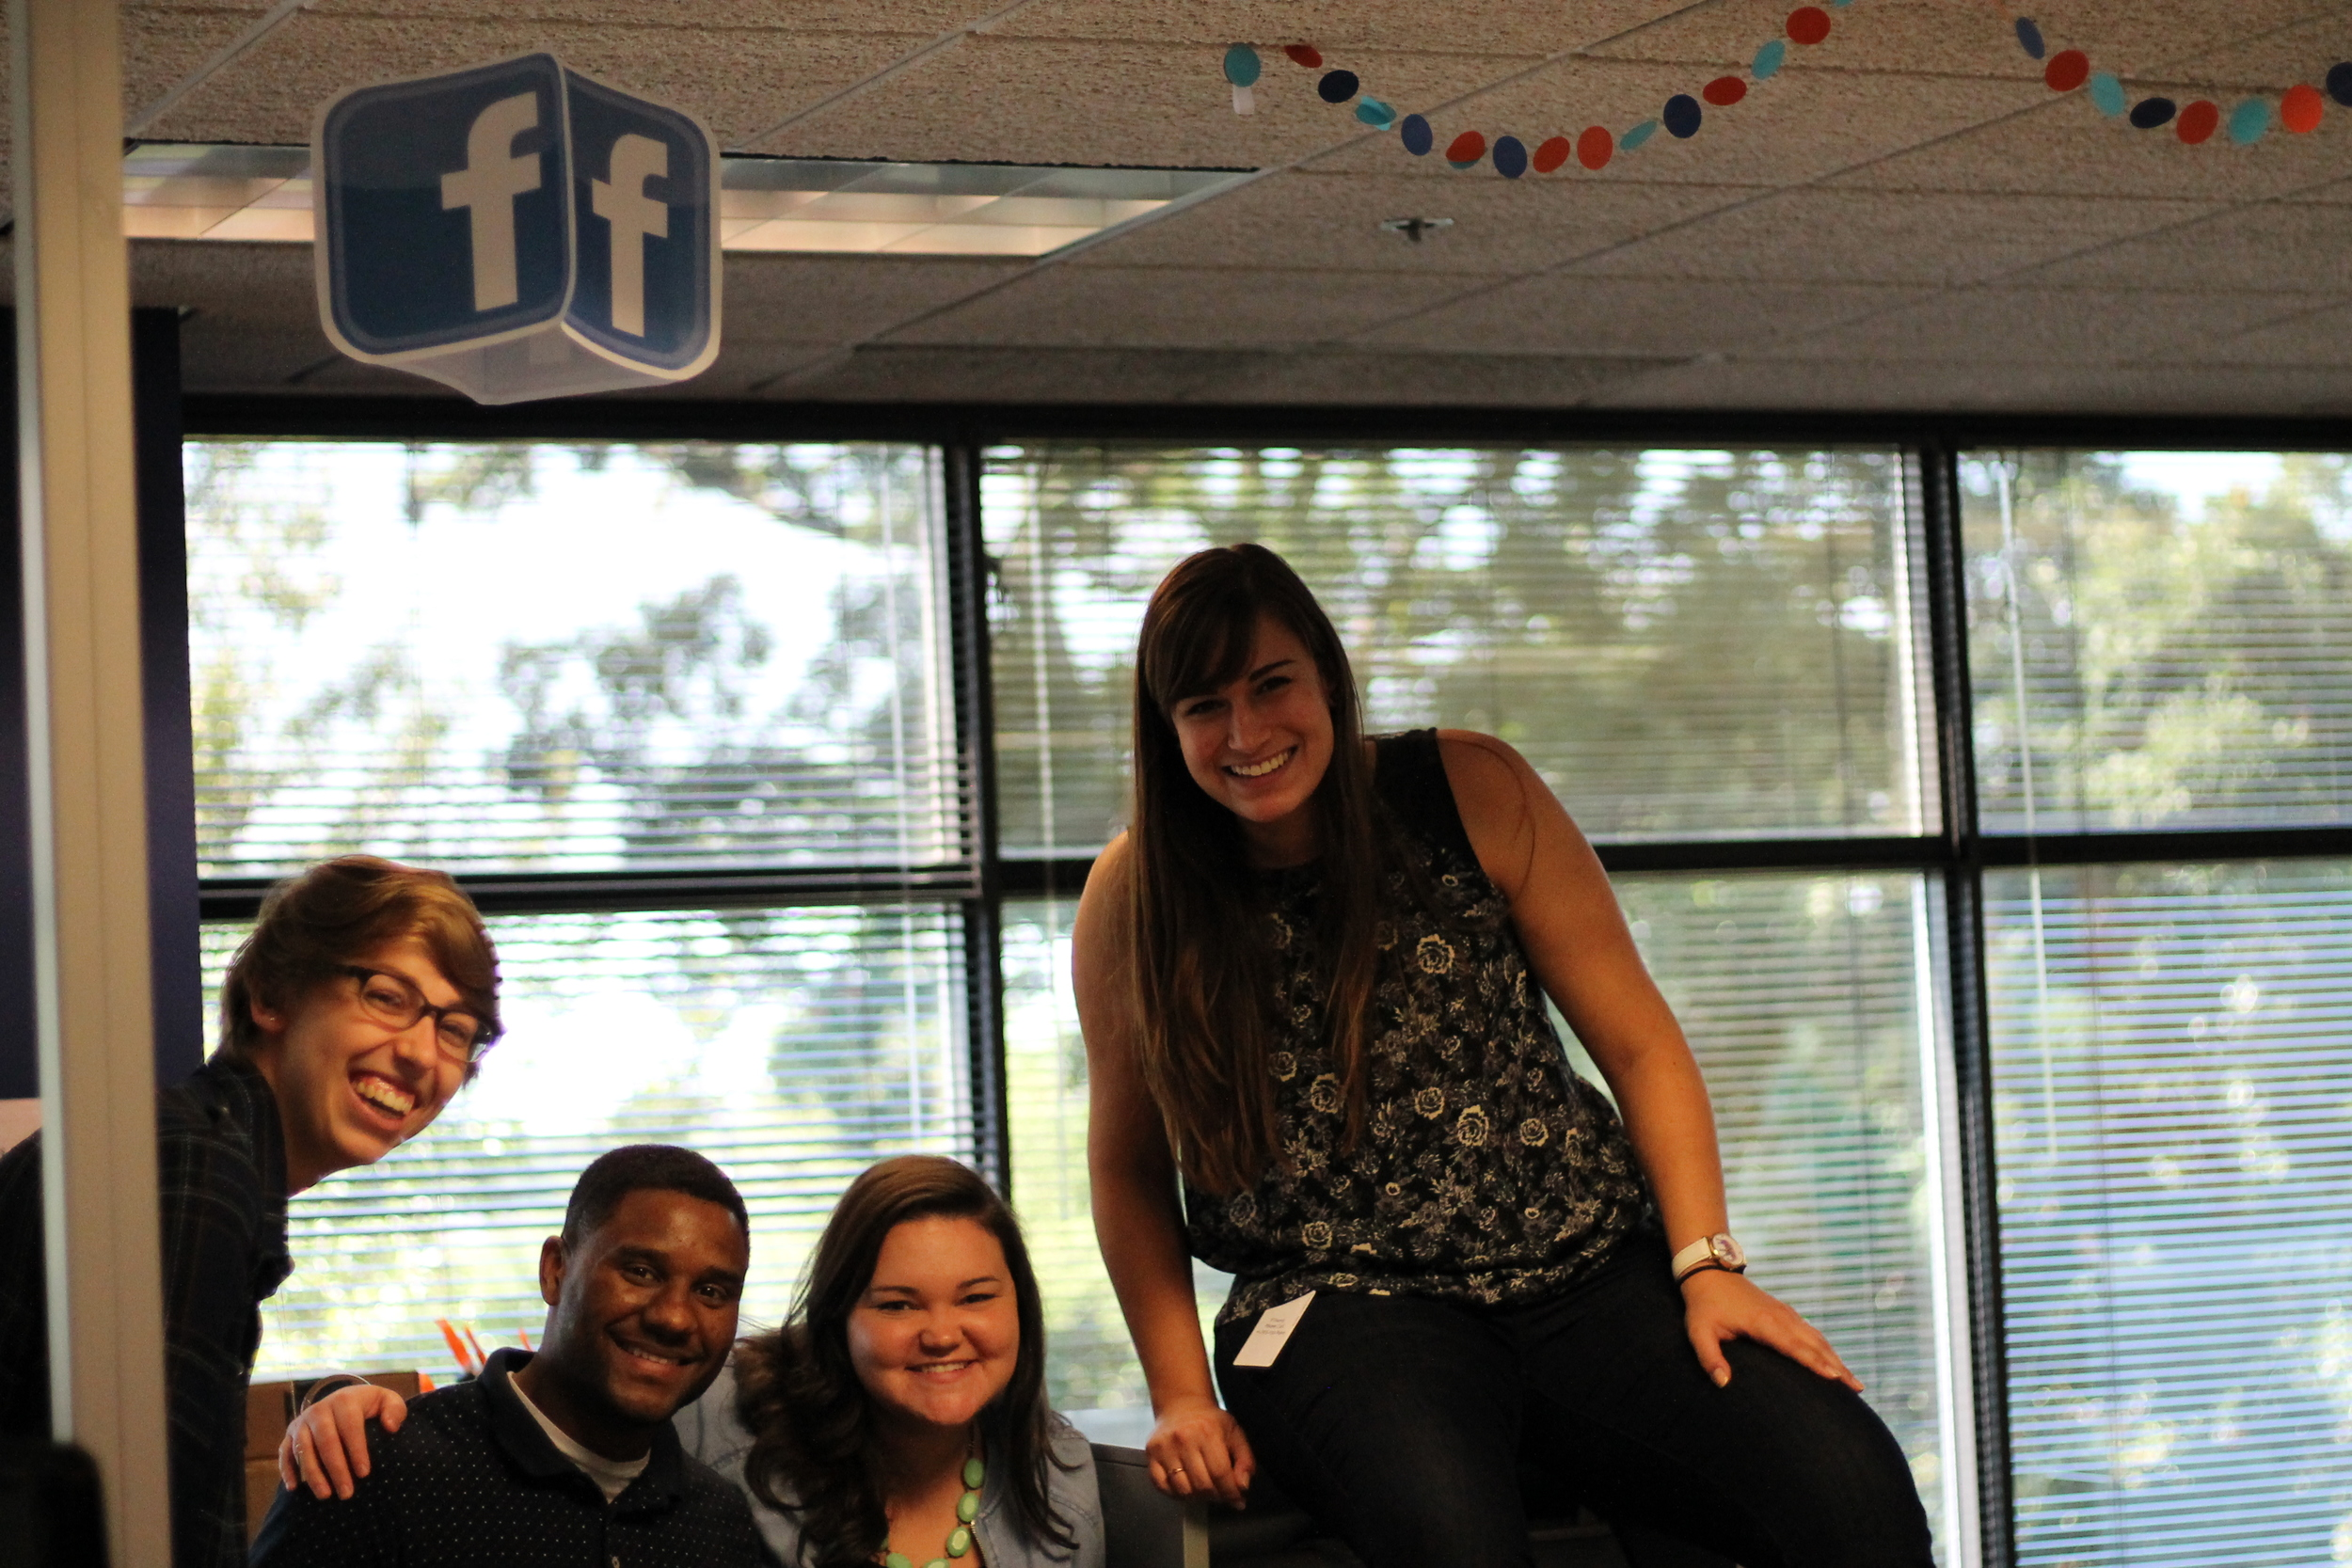 SEE PICTURES FROM OUR OFFICE DECORATING PARTY!